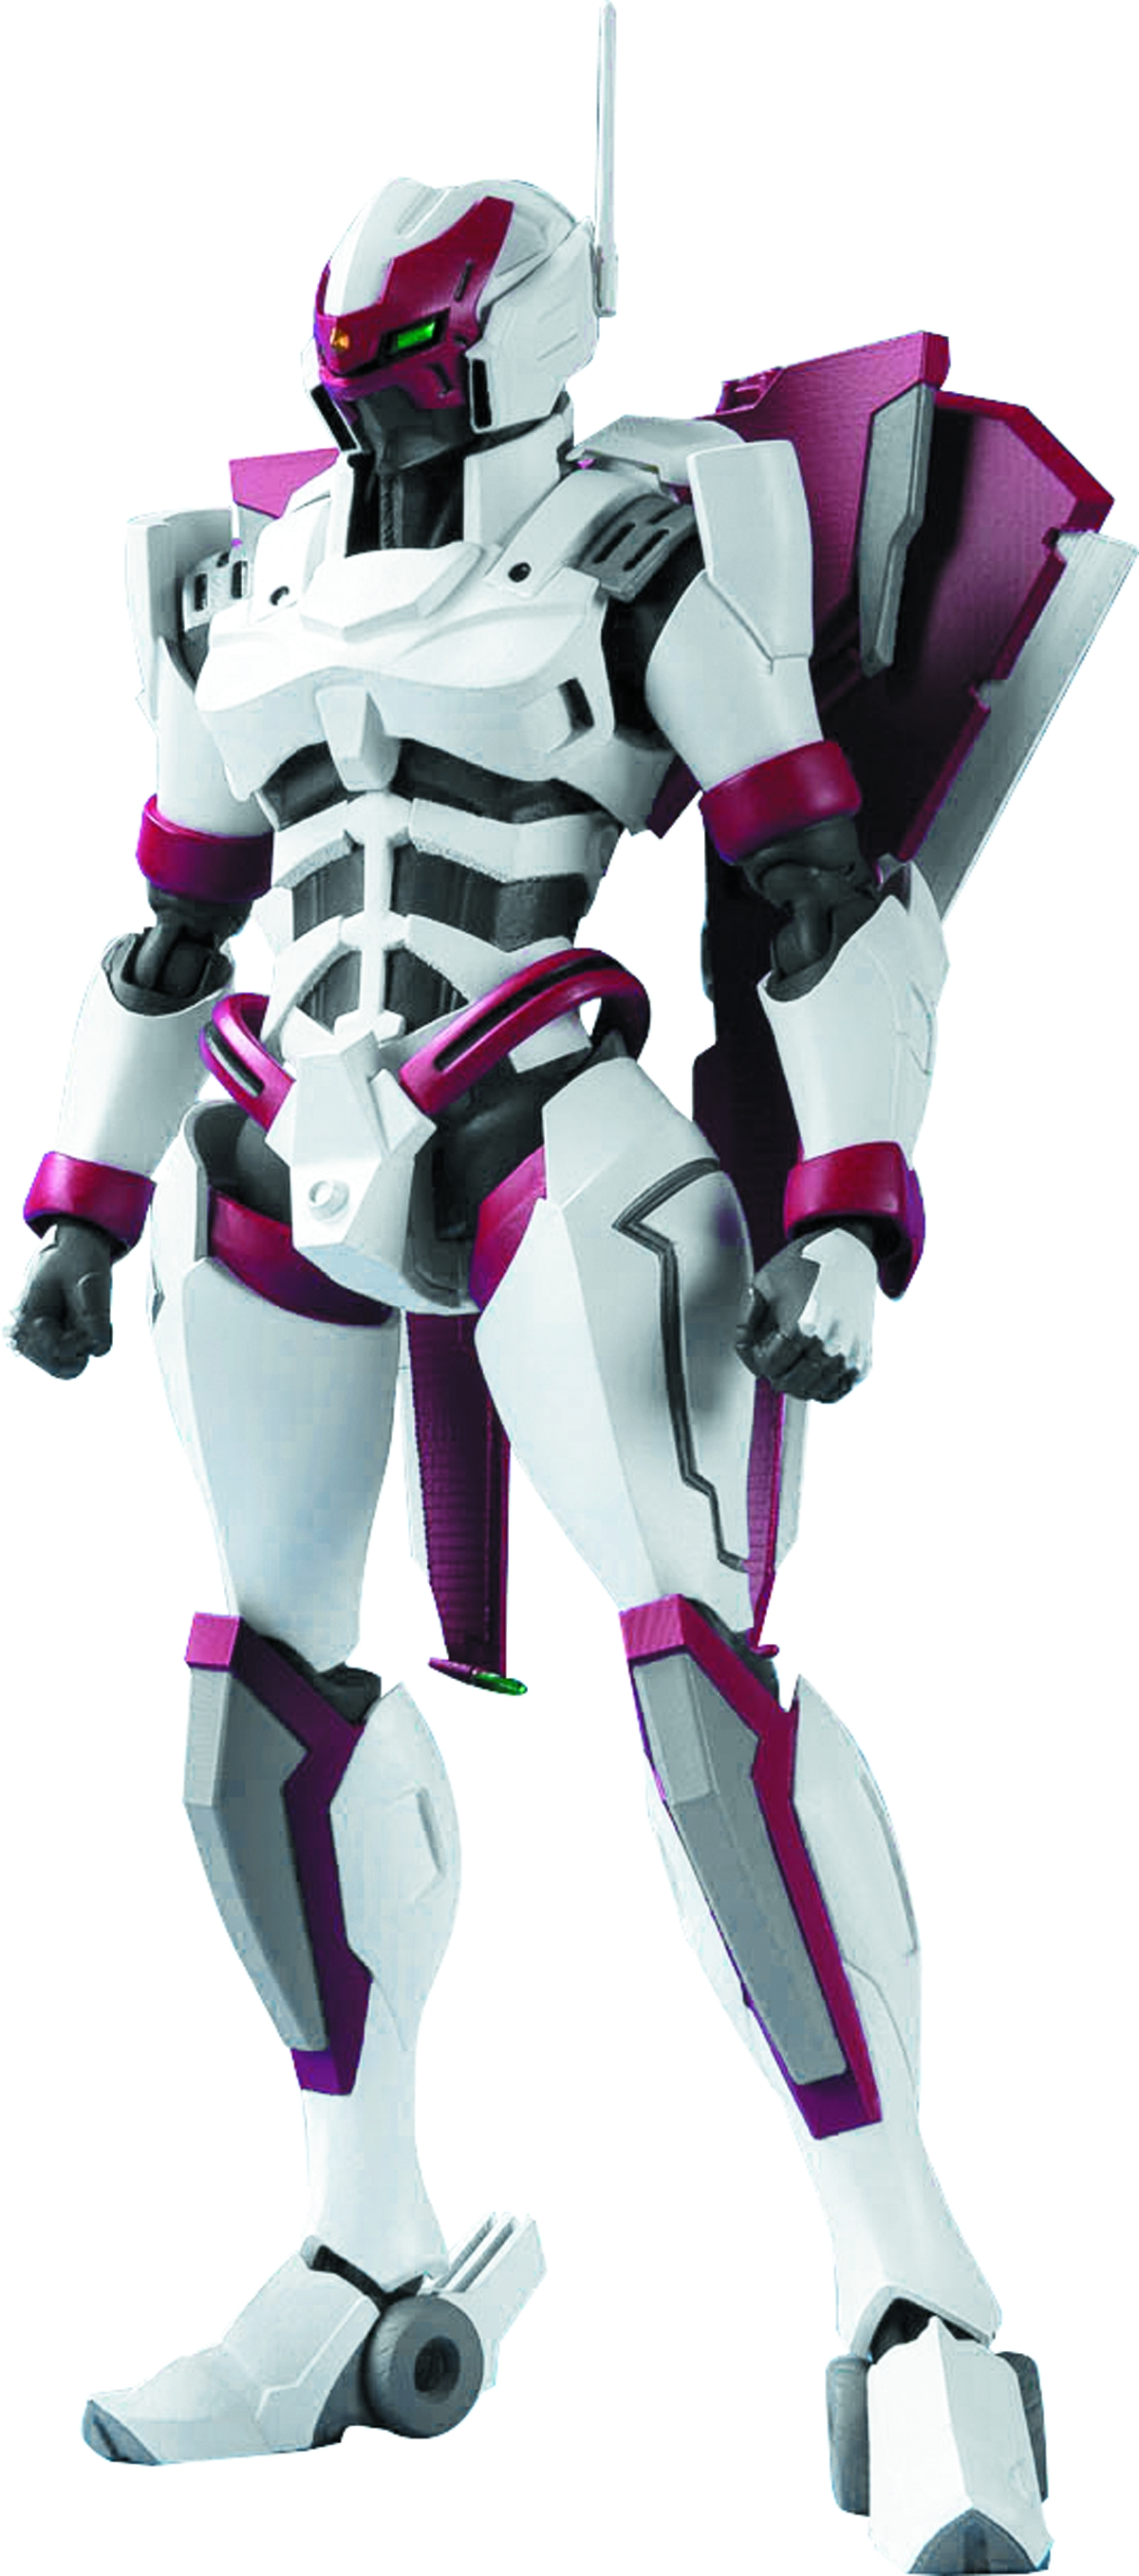 ACTIVE RAID: Strike Interceptor (S.H. Figuarts Action Figure)